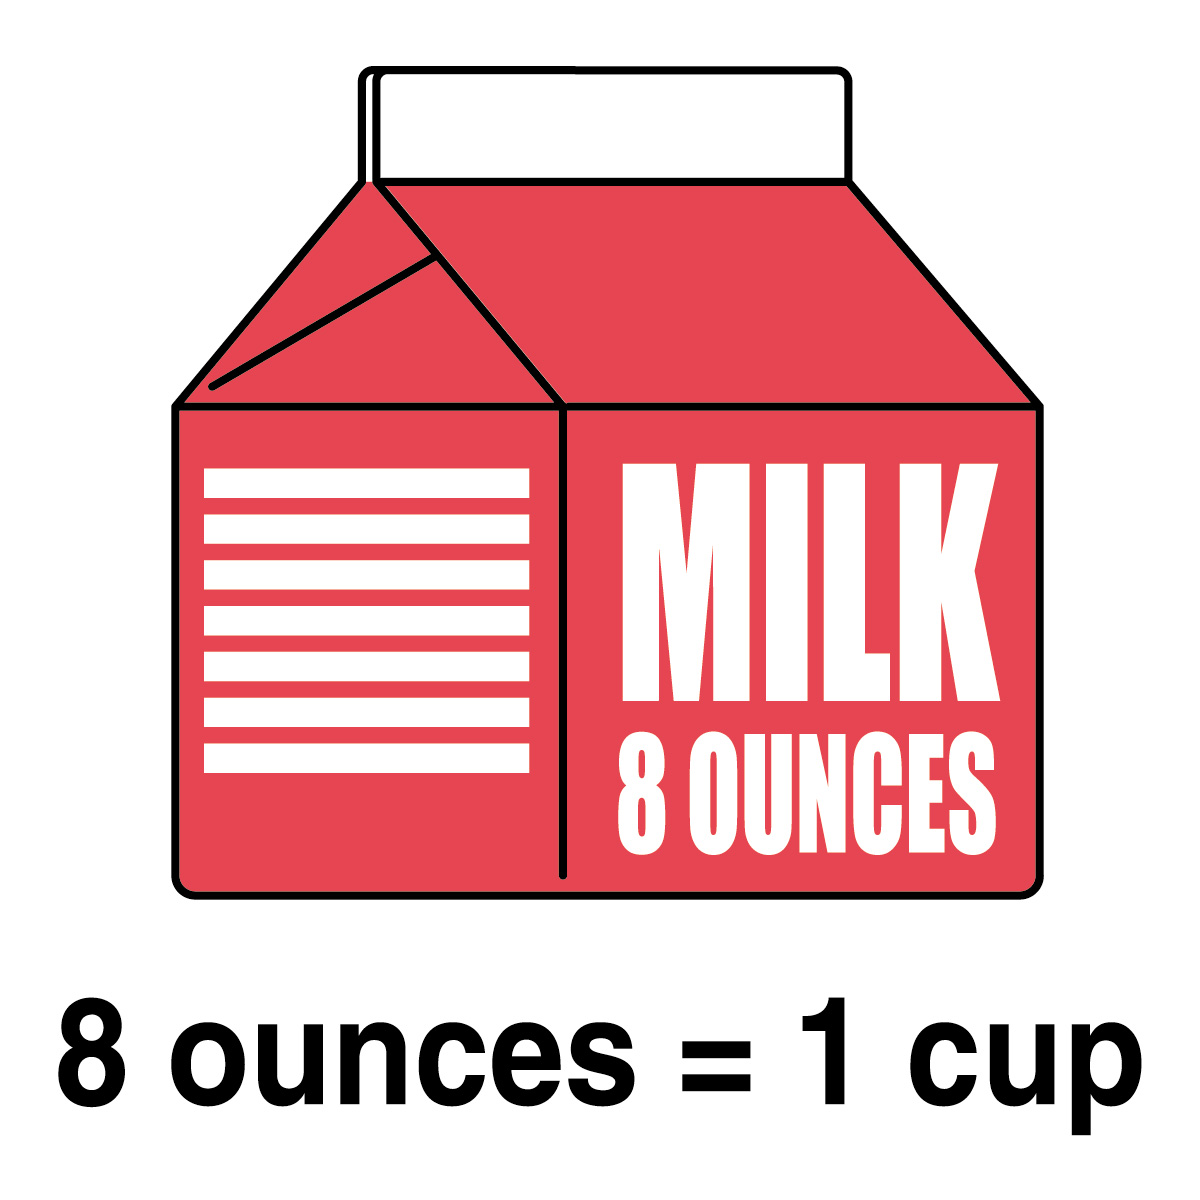 banner royalty free stock Free quart cliparts download. Measure clipart pint milk.